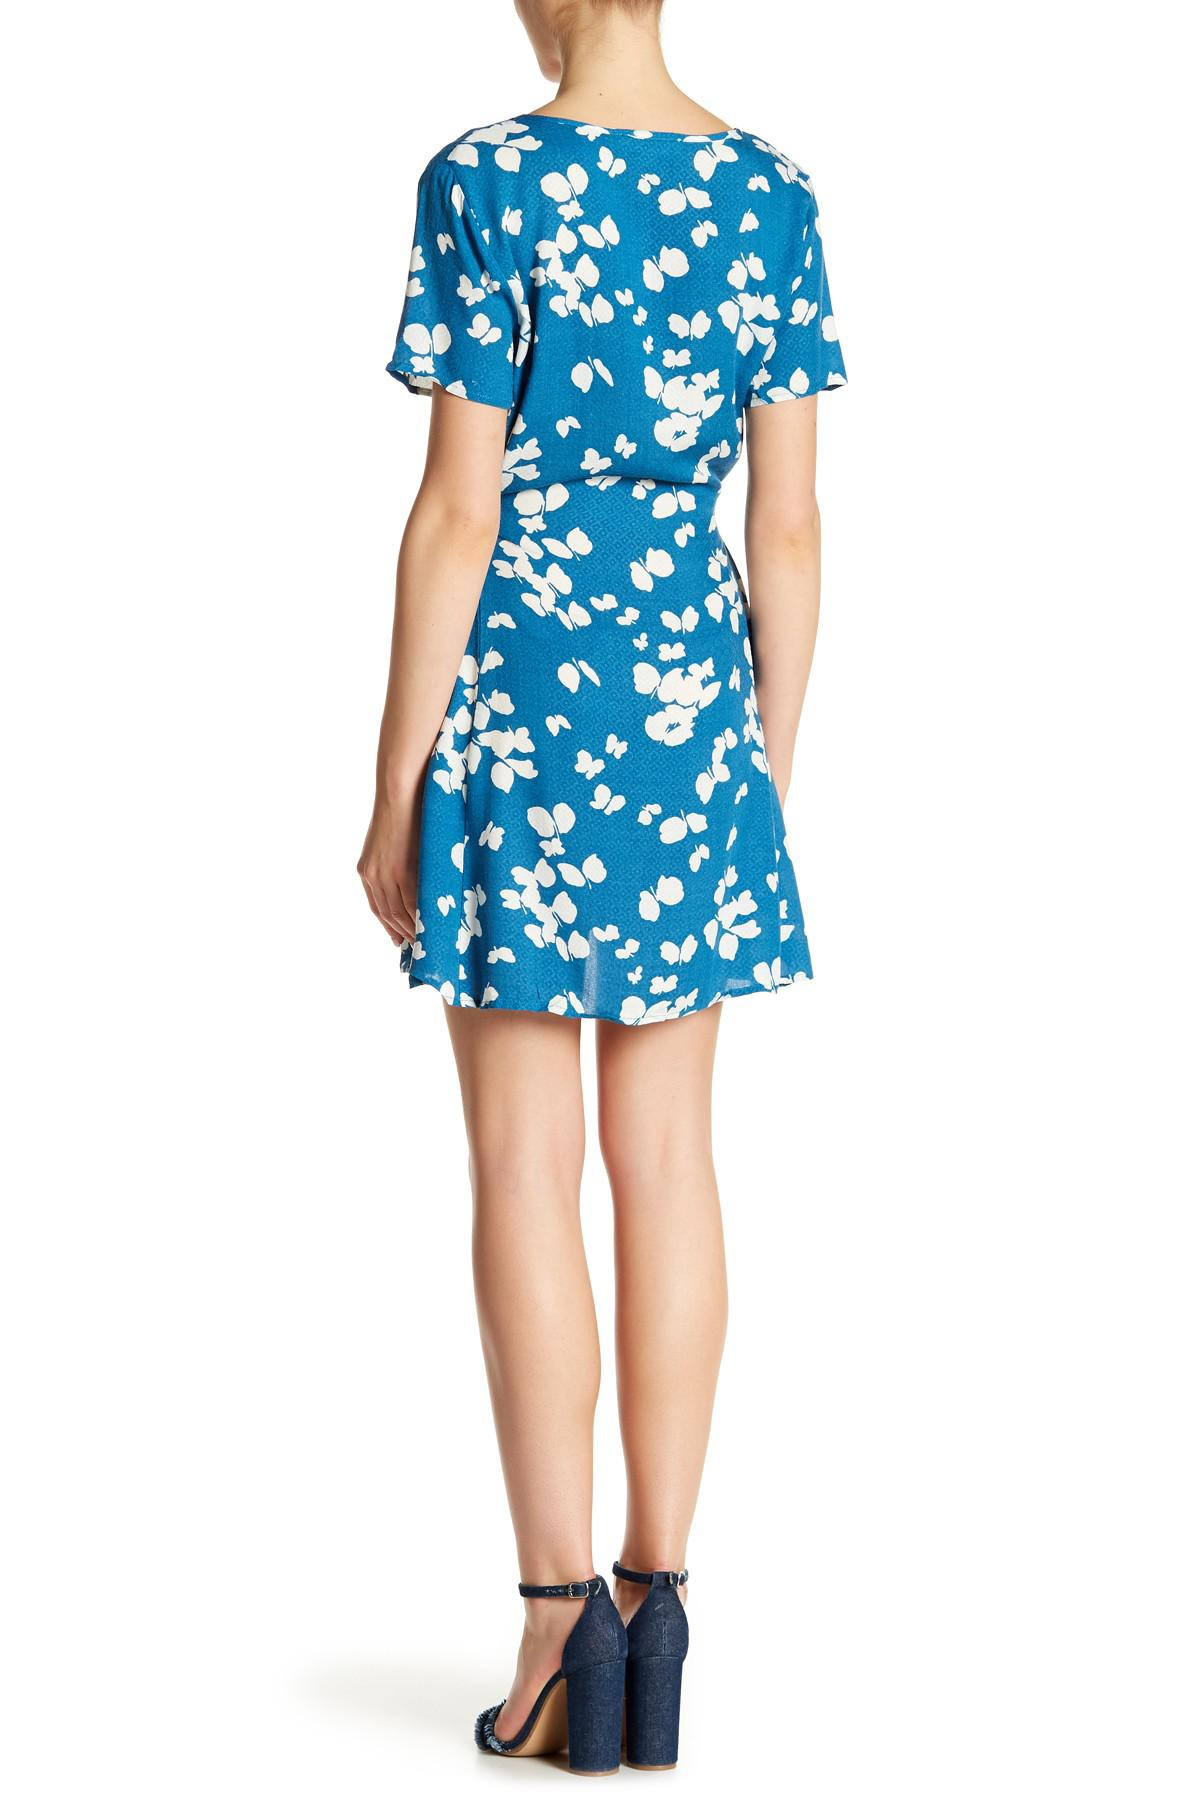 70511cc3582d8 Lyst - Love Stitch Front Button Printed Dress in Blue